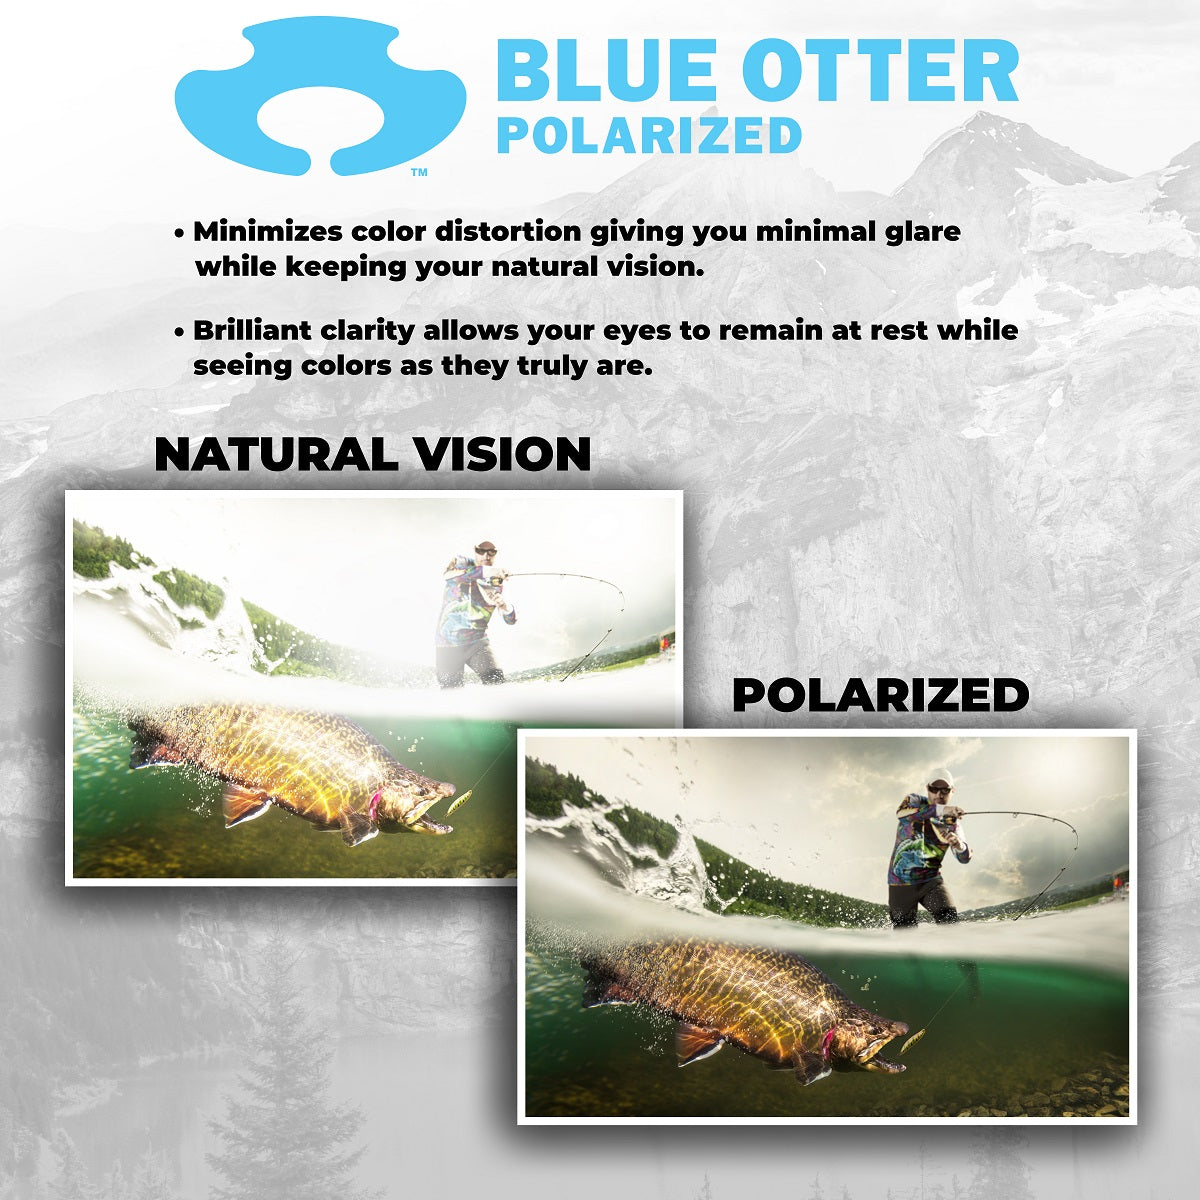 Blue Otter Polarized Natural Vision